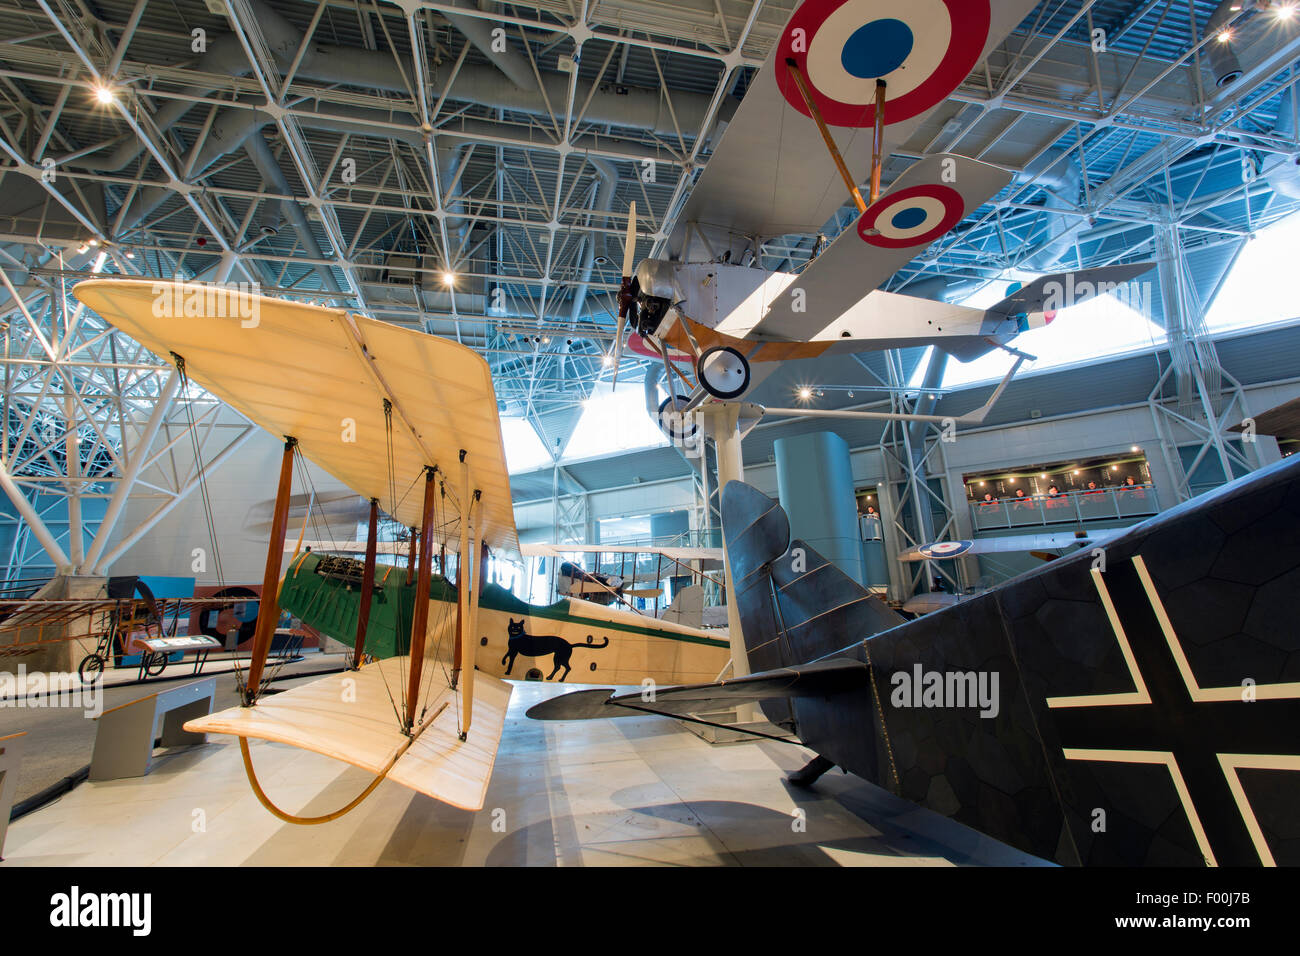 Canada,Ontario,Ottawa, Canada Aviation & Space Museum, Nieuport 12 (top) and Curtiss JN-4 Canuk - Stock Image